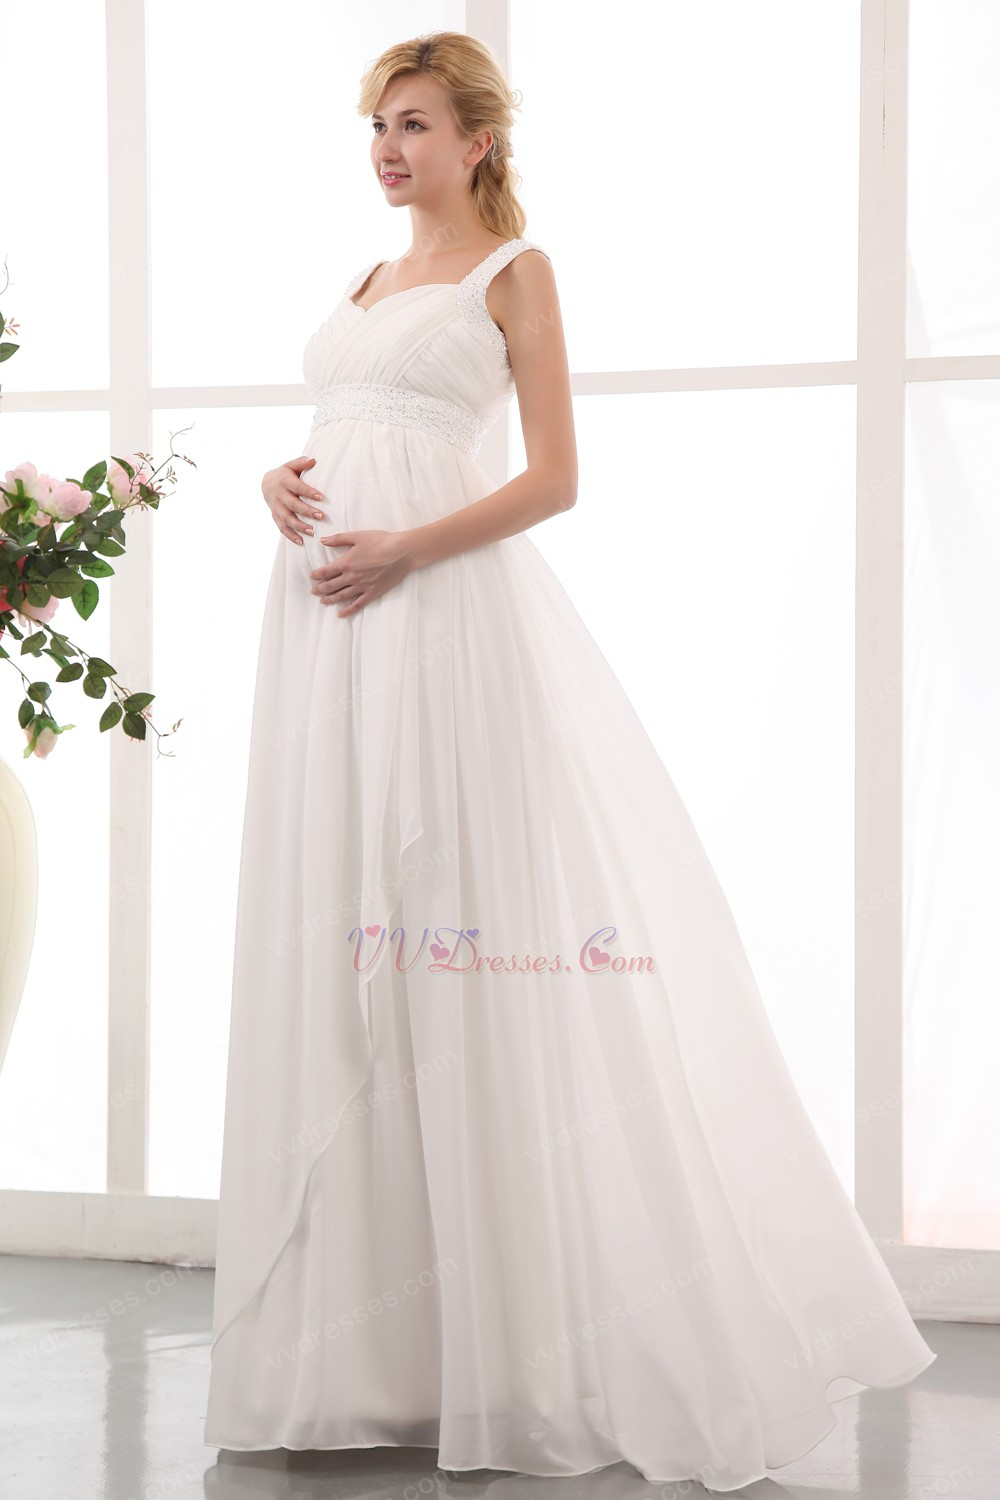 Straps ivory chiffon maternity dress for bride wear straps ivory chiffon maternity dress for bride wear powered by magic zoom move your mouse over image ombrellifo Image collections